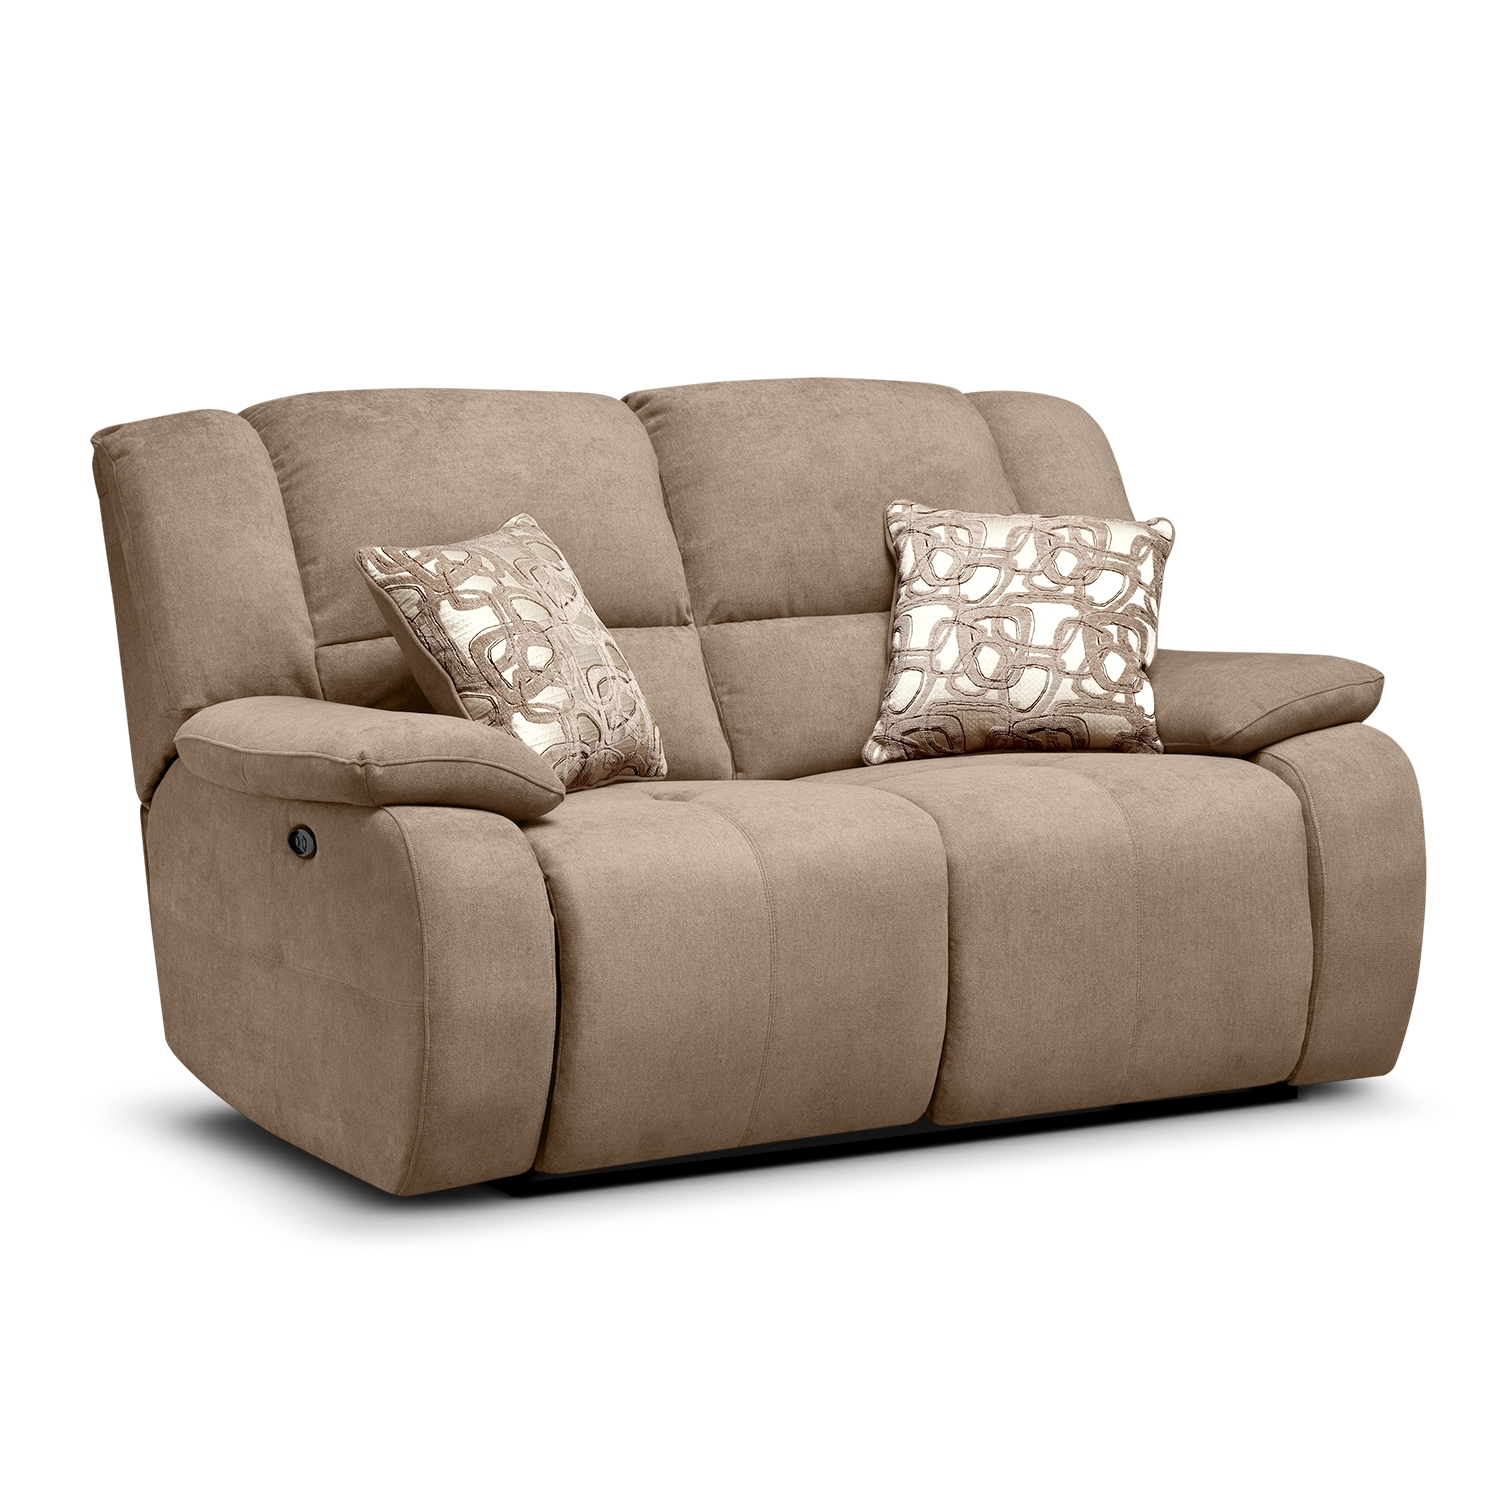 Destin Beige Power Reclining Loveseat